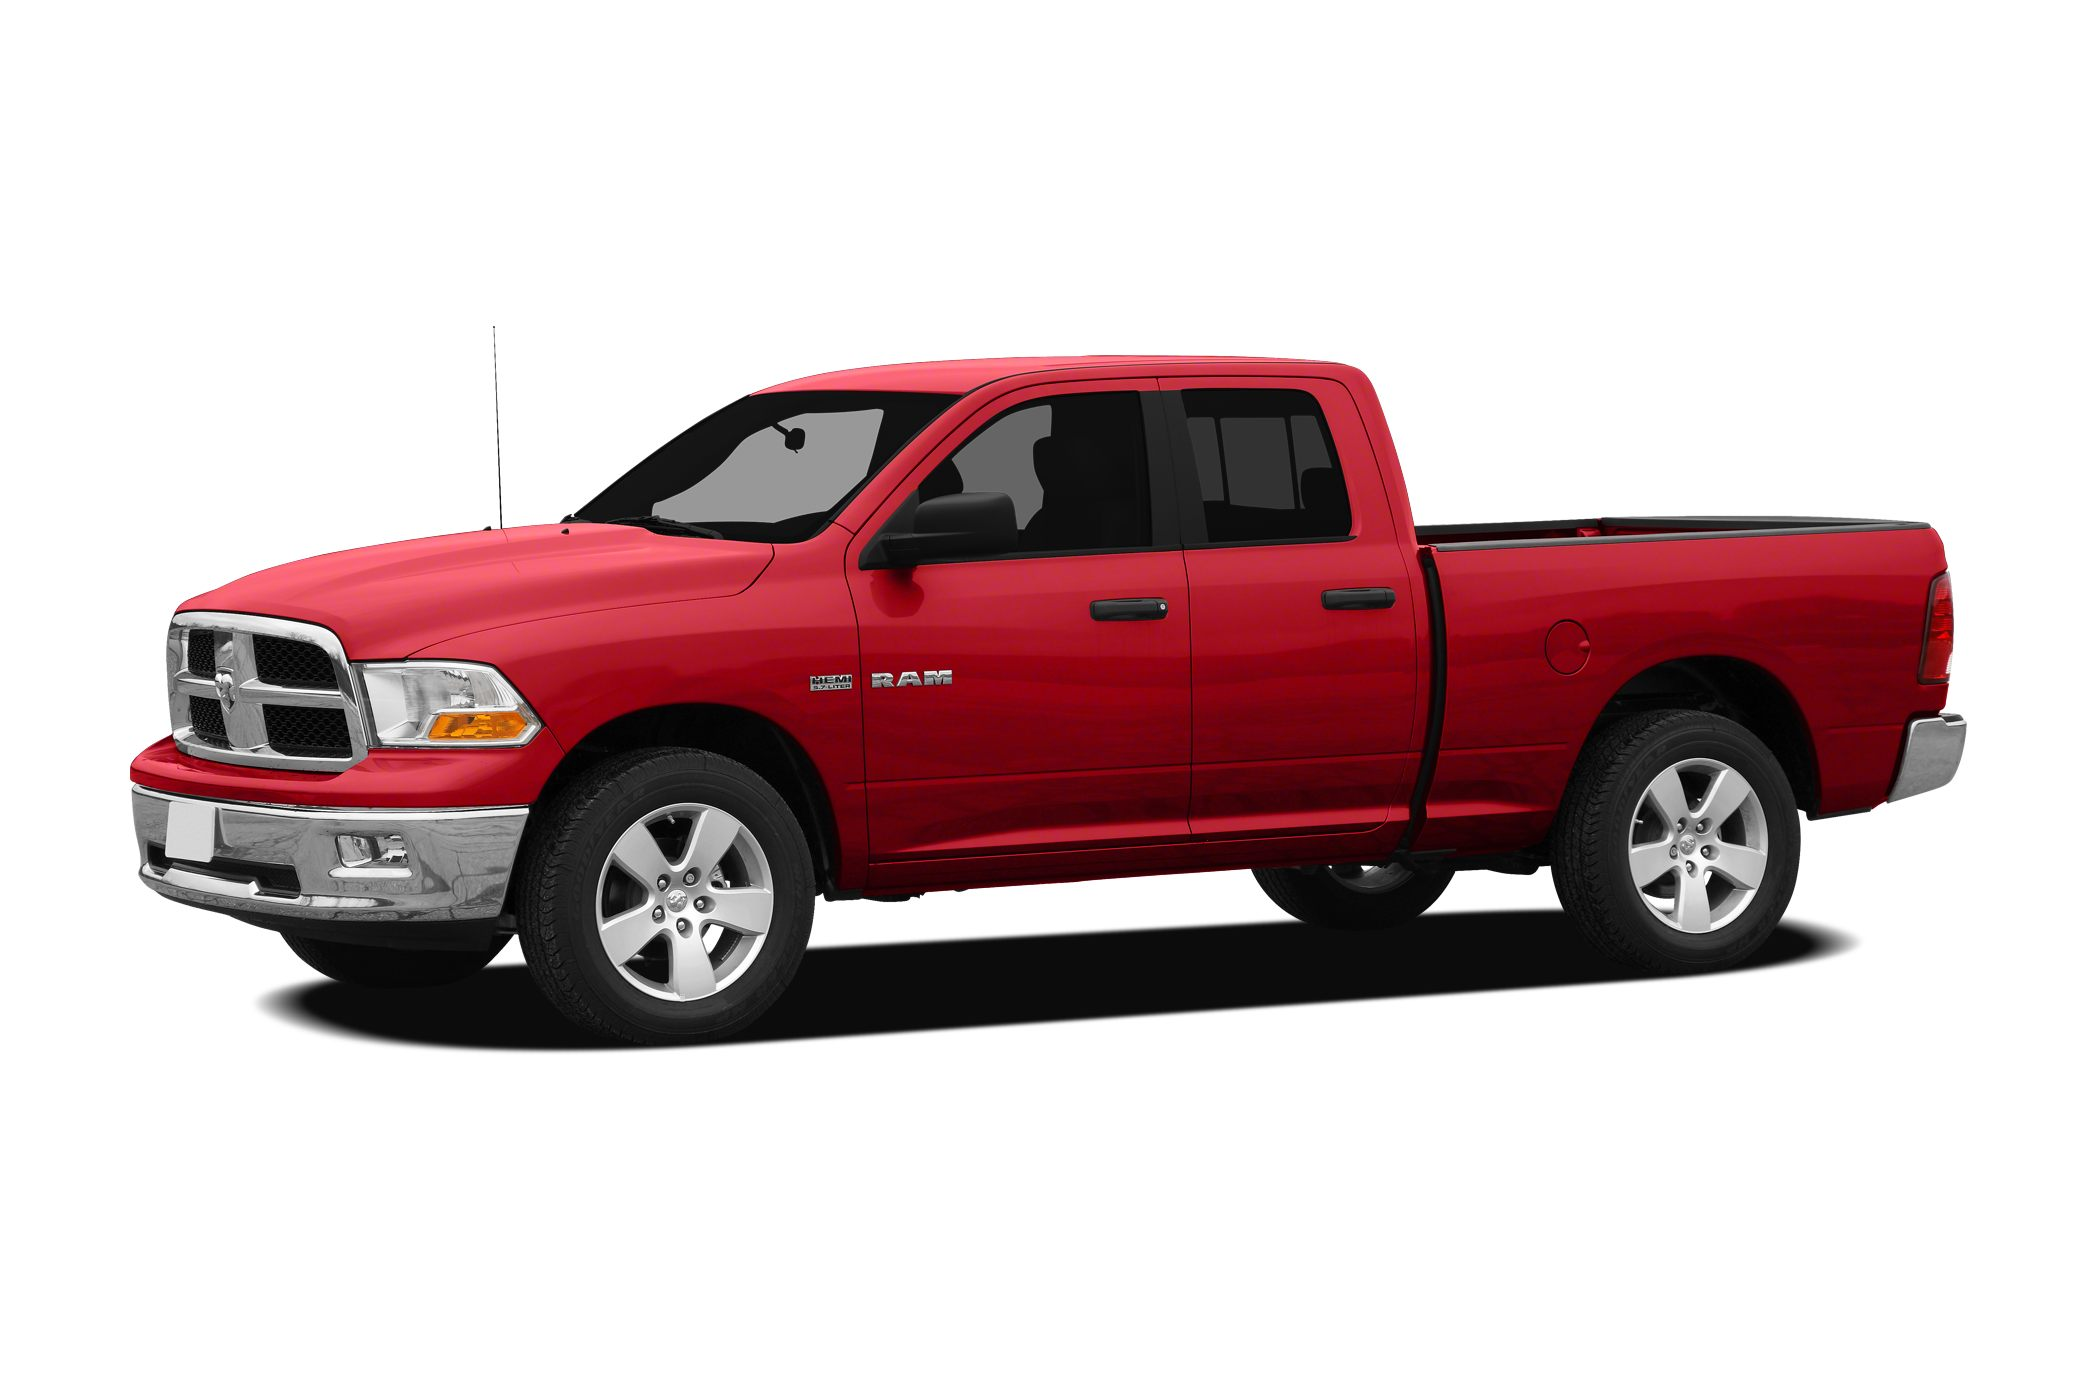 2011 Dodge Ram 1500 SLT Visit New 2 You Pre Owned Specialist online at new2youpreownedcom to see